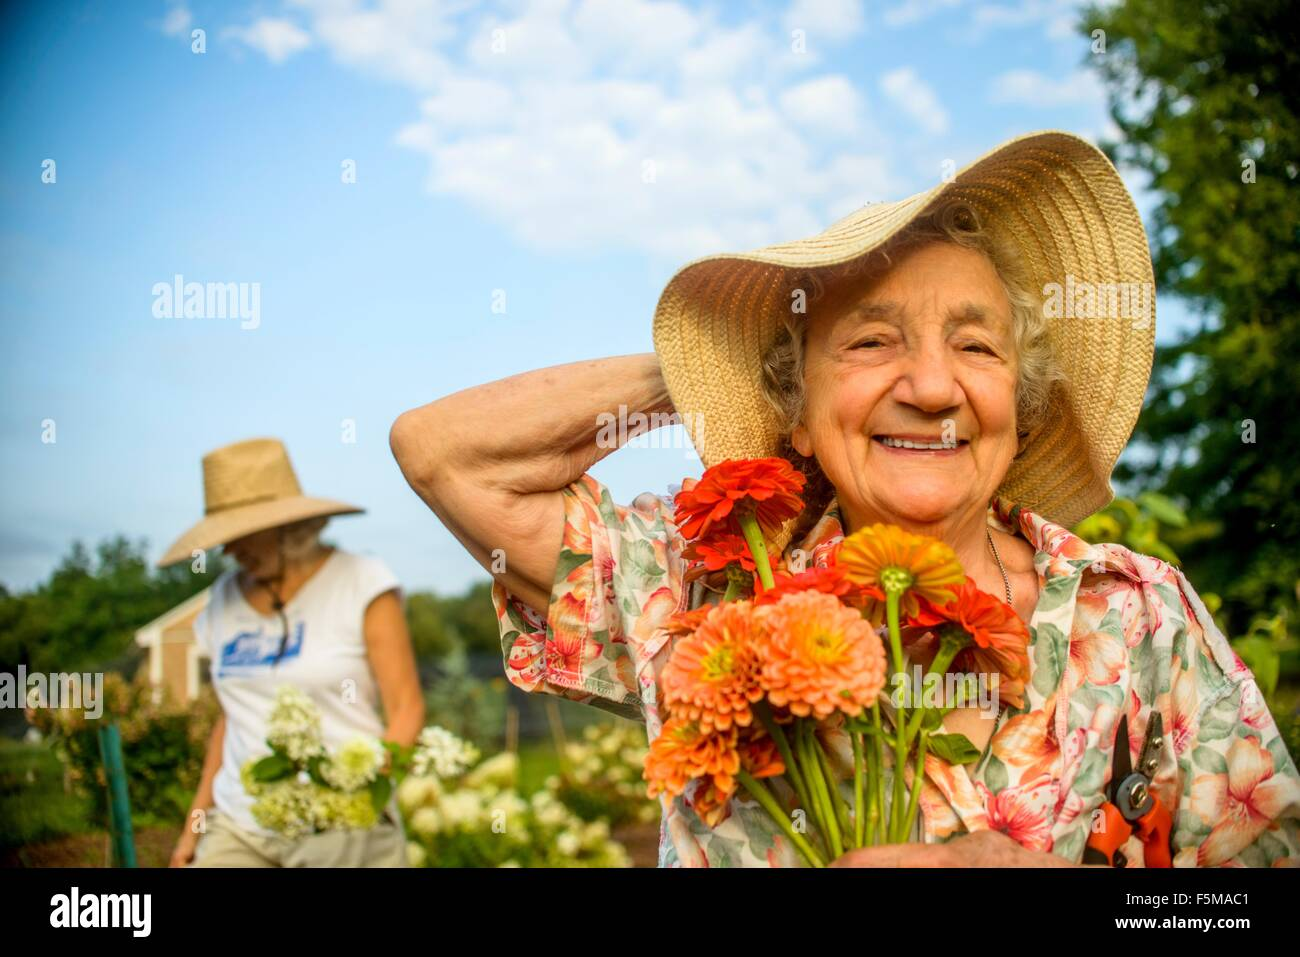 Senior woman holding onto straw hat and flowers on farm - Stock Image